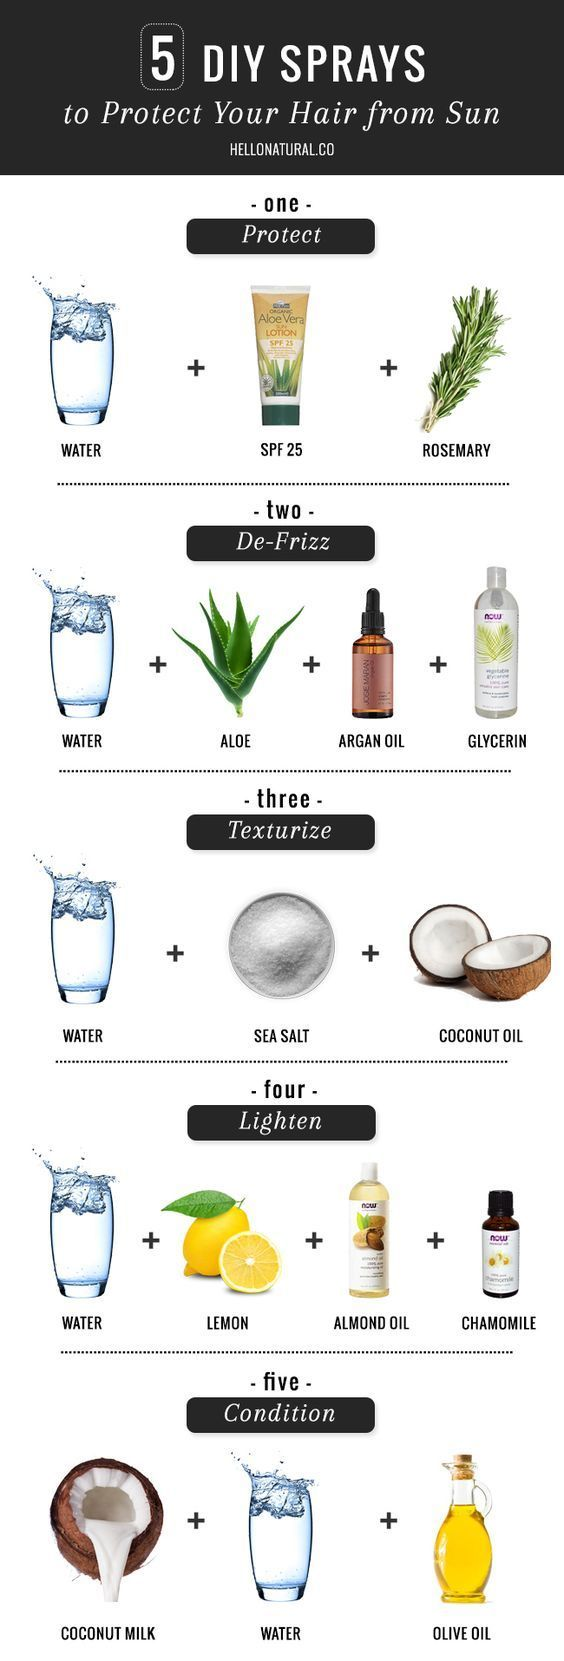 Protect, de-frizz, texturize, lighten & hydrate hair from the sun, heat, and humidity w/these 5 DIY sprays